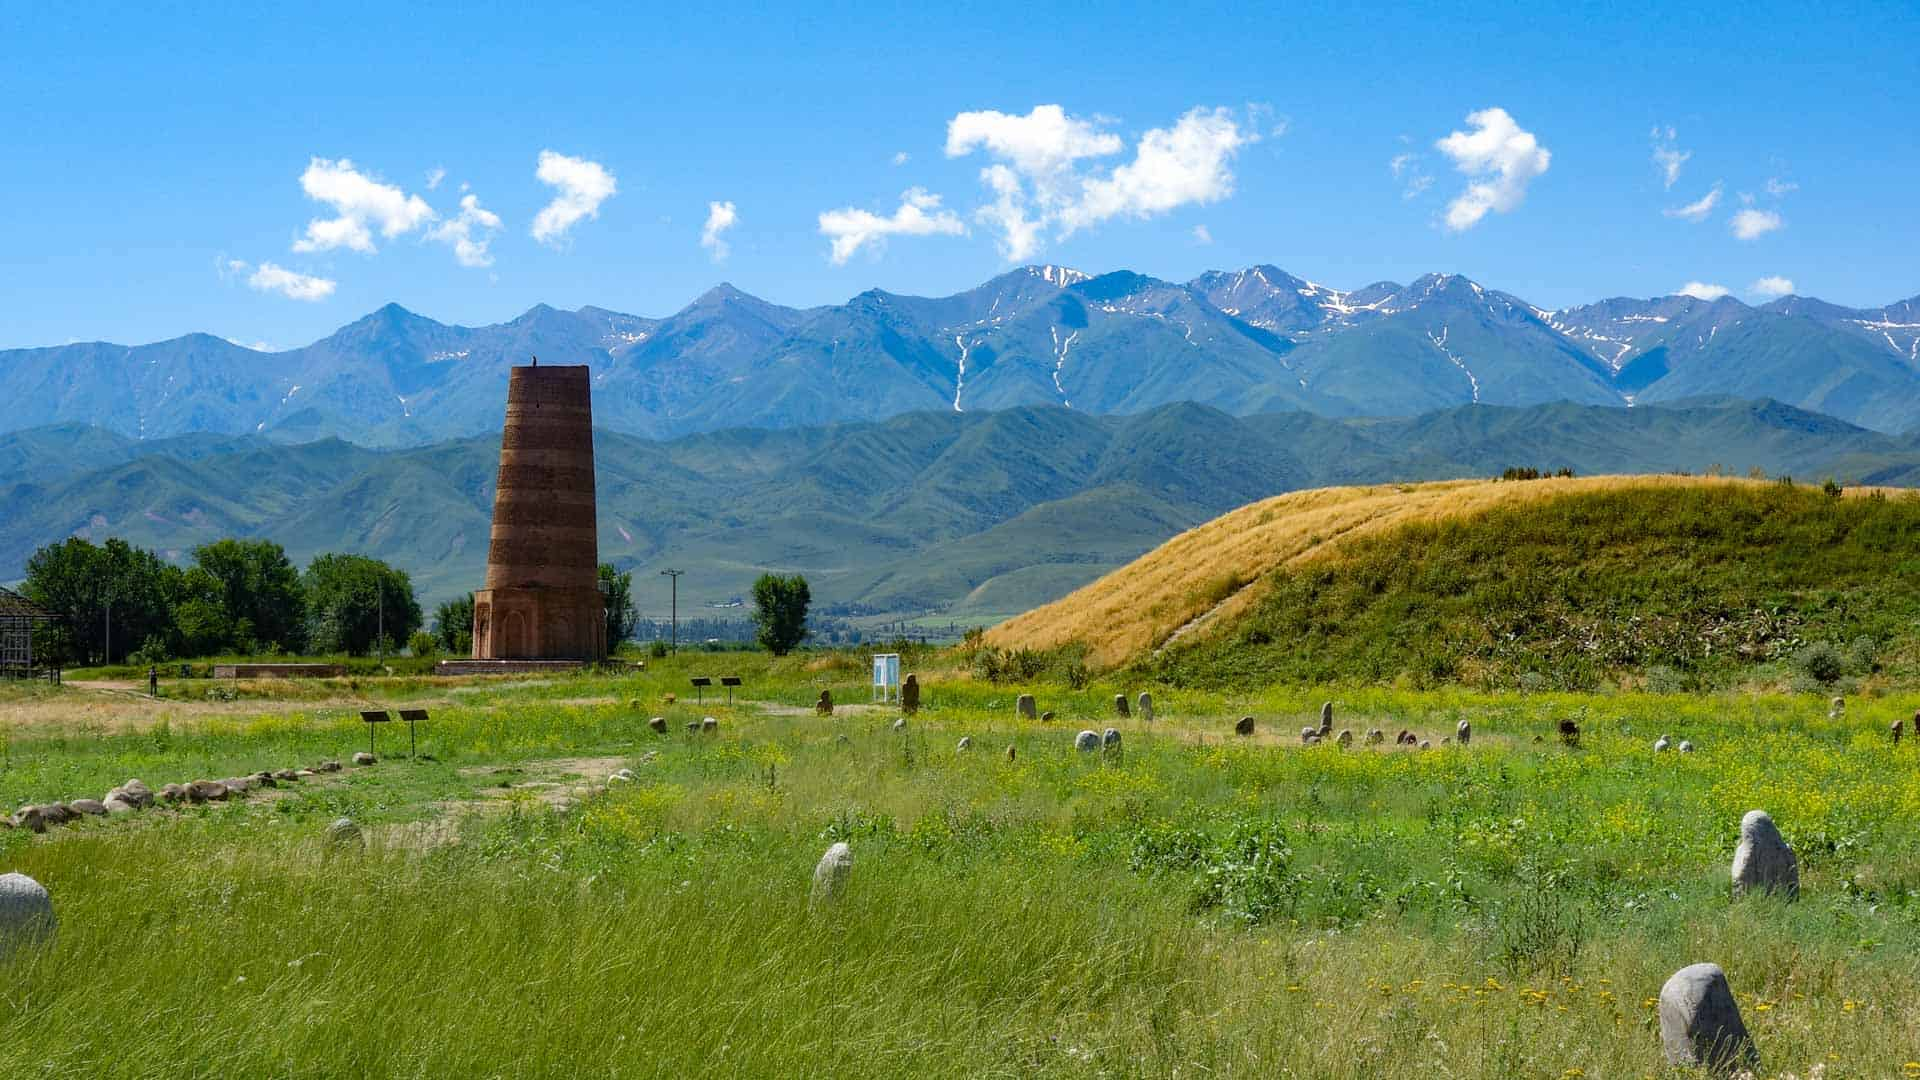 View of the Burana Tower with the mountains in the background